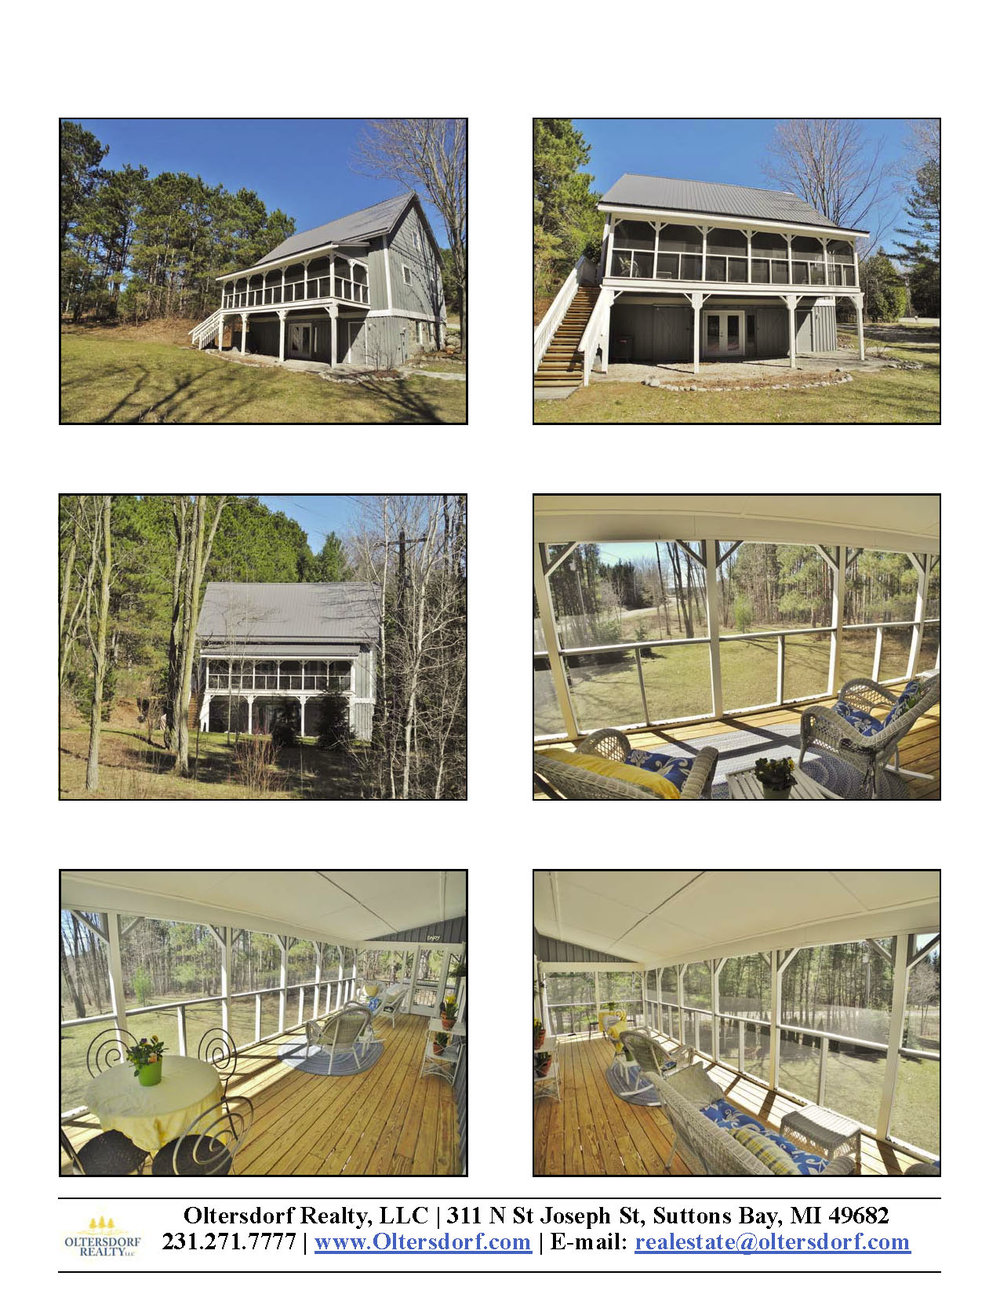 881 N Eagle Highway, Lake Leelanau, MI – Unique Post & Beam Home For Sale By Oltersdorf Realty LLC - Marketing Packet (2).jpg